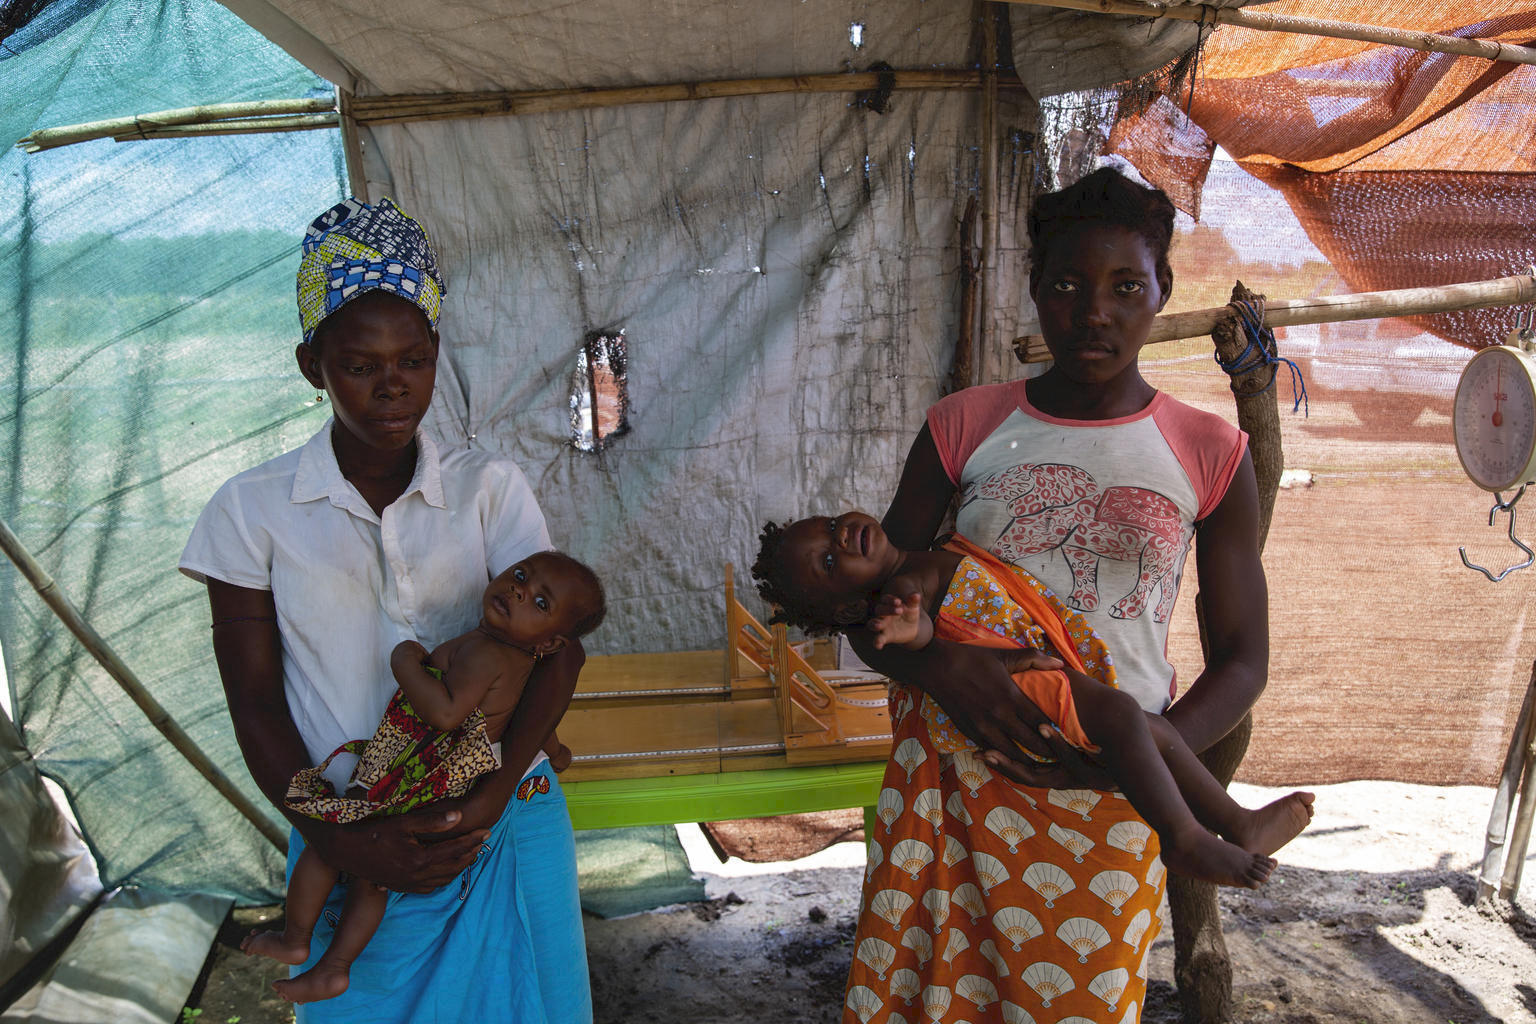 Women bringing their children to be screened for malnutrition at a UNICEF health center in Ndjenja Resettlement camp, Mozambique © UNICEF/UNI310194/Prinsloo